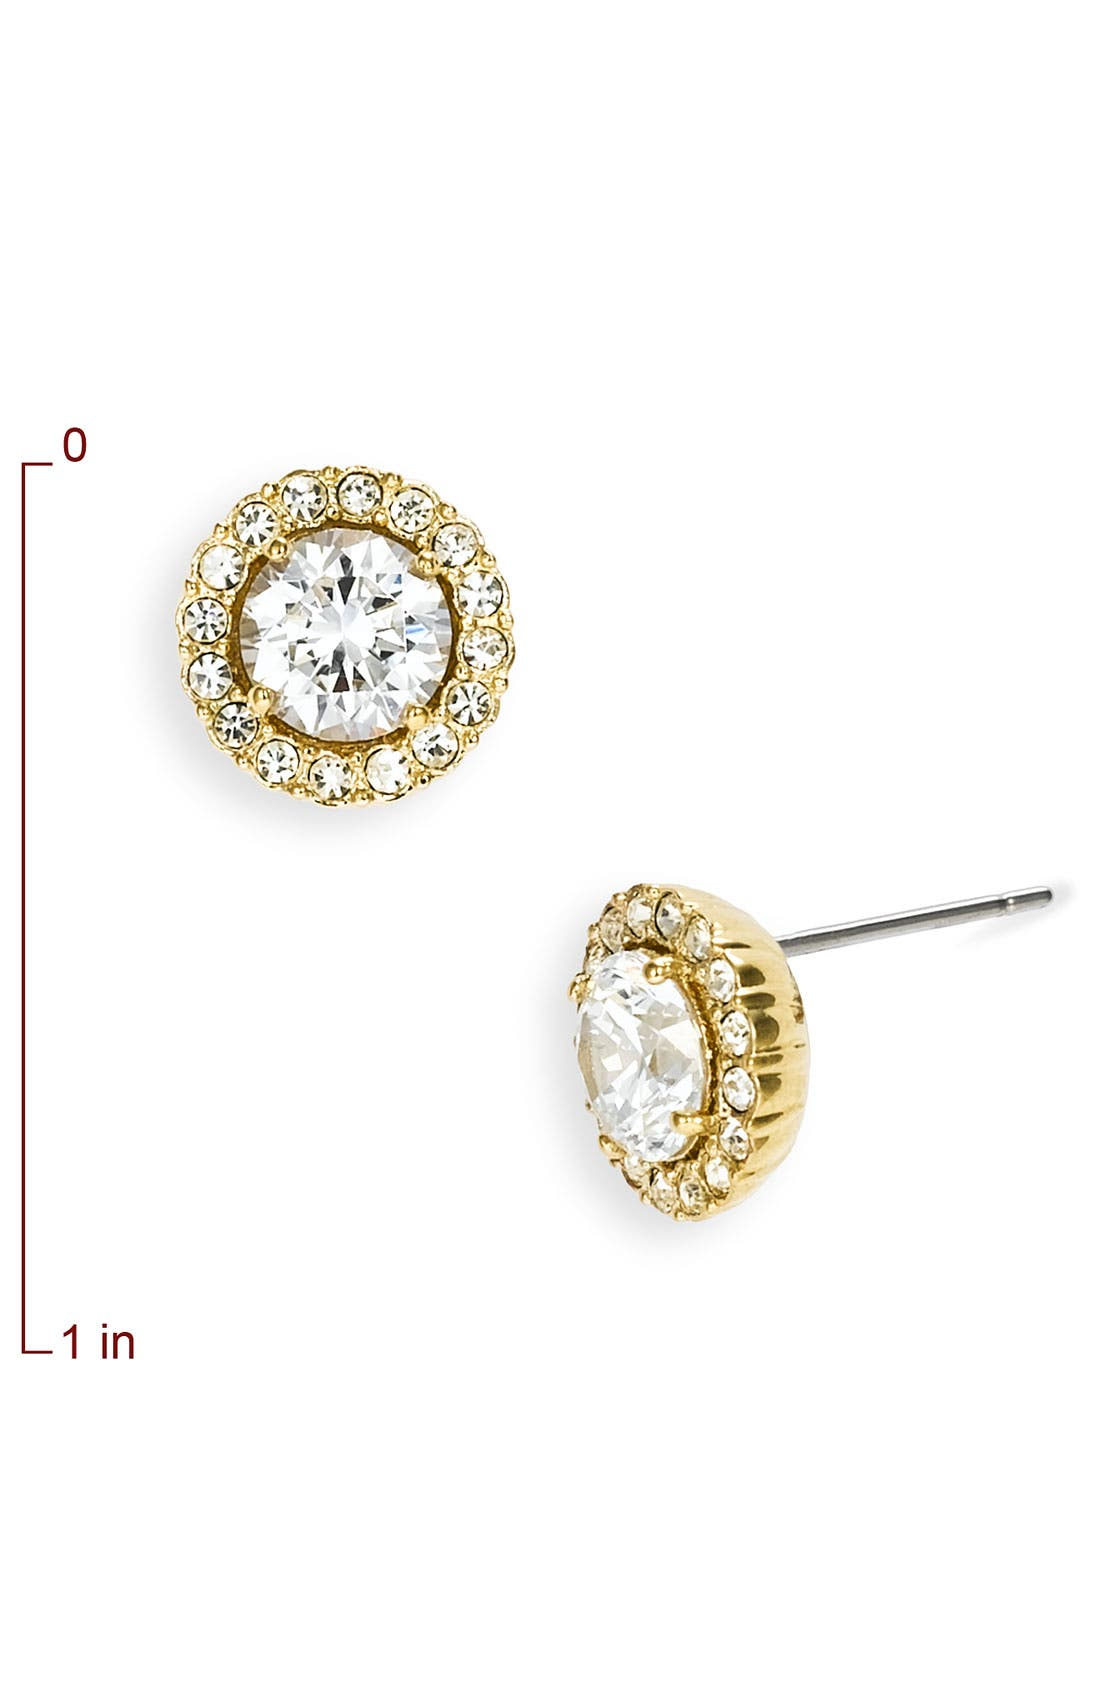 Round Cubic Zirconia Stud Earrings,                             Alternate thumbnail 3, color,                             GOLD/ CLEAR CRYSTAL